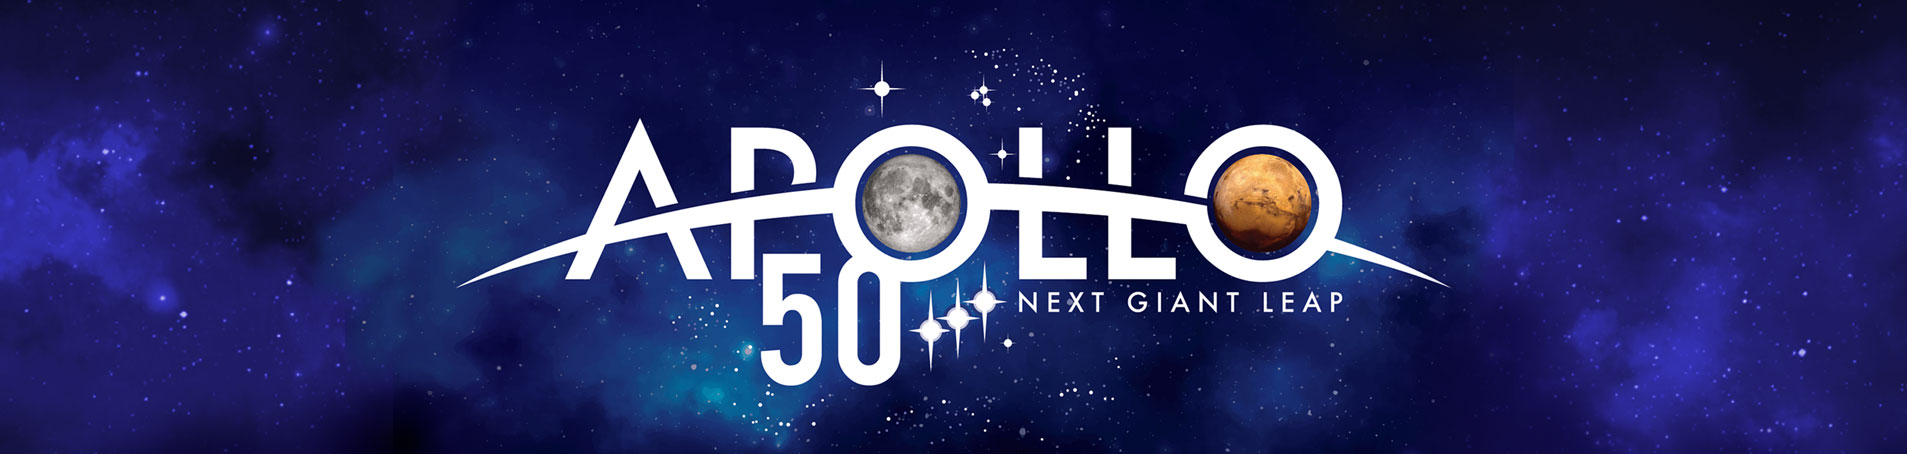 Apollo 50th anniversar